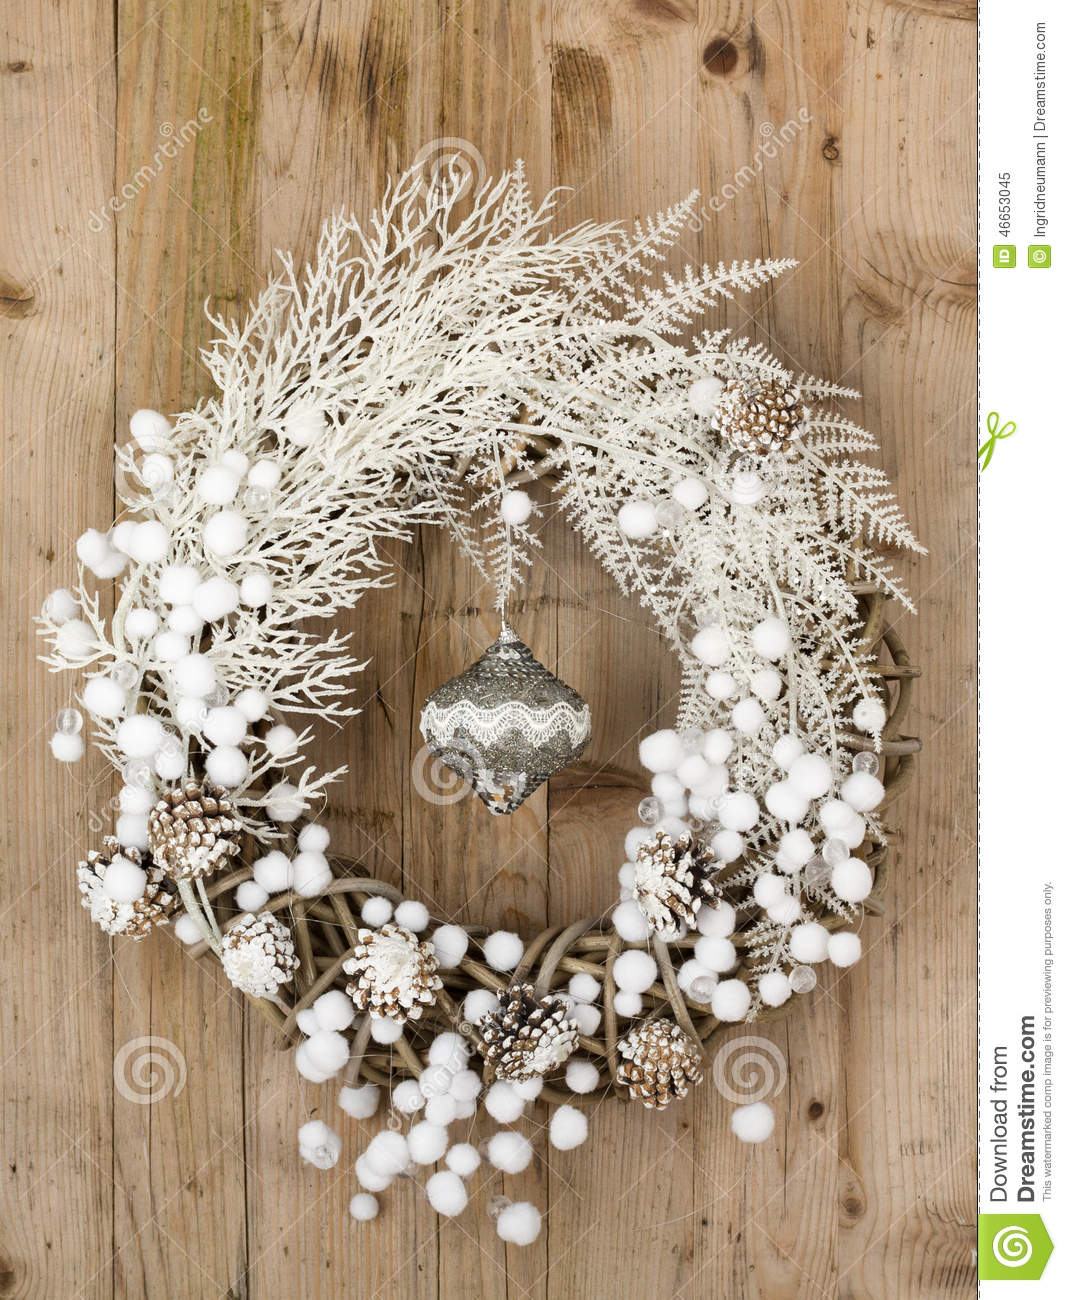 White Christmas Wreath On Brown Wooden Vintage Background Stock ...